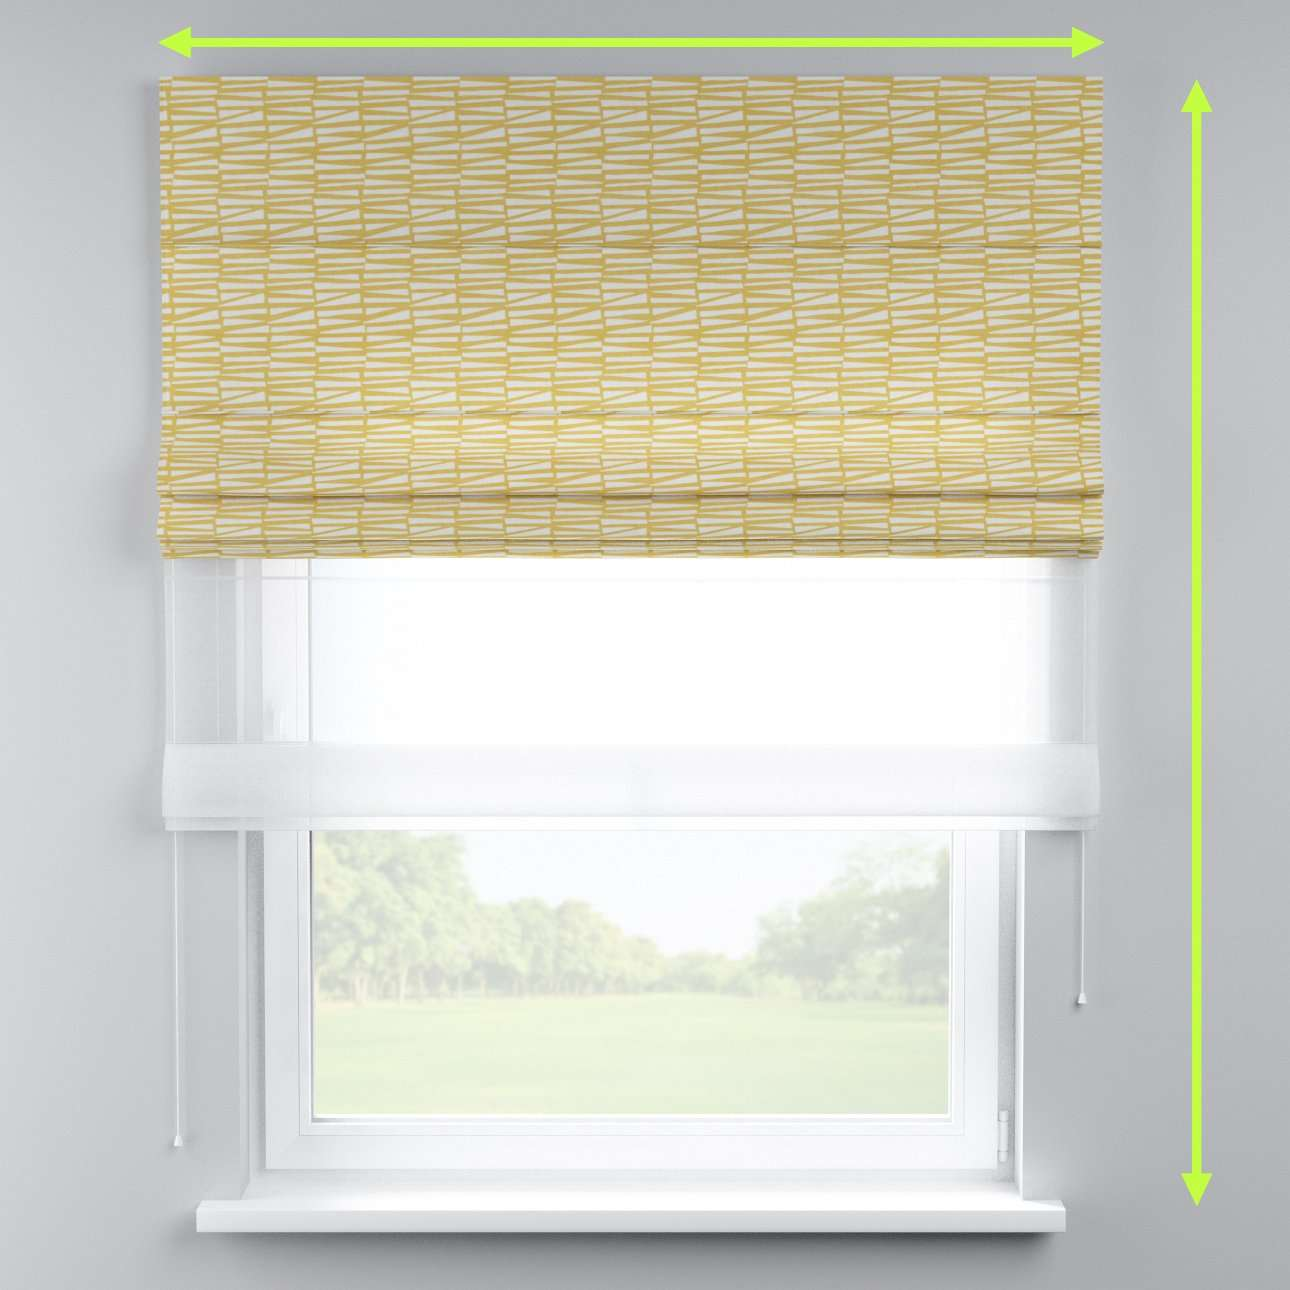 Voile and fabric roman blind (DUO II) in collection Norge, fabric: 140-86